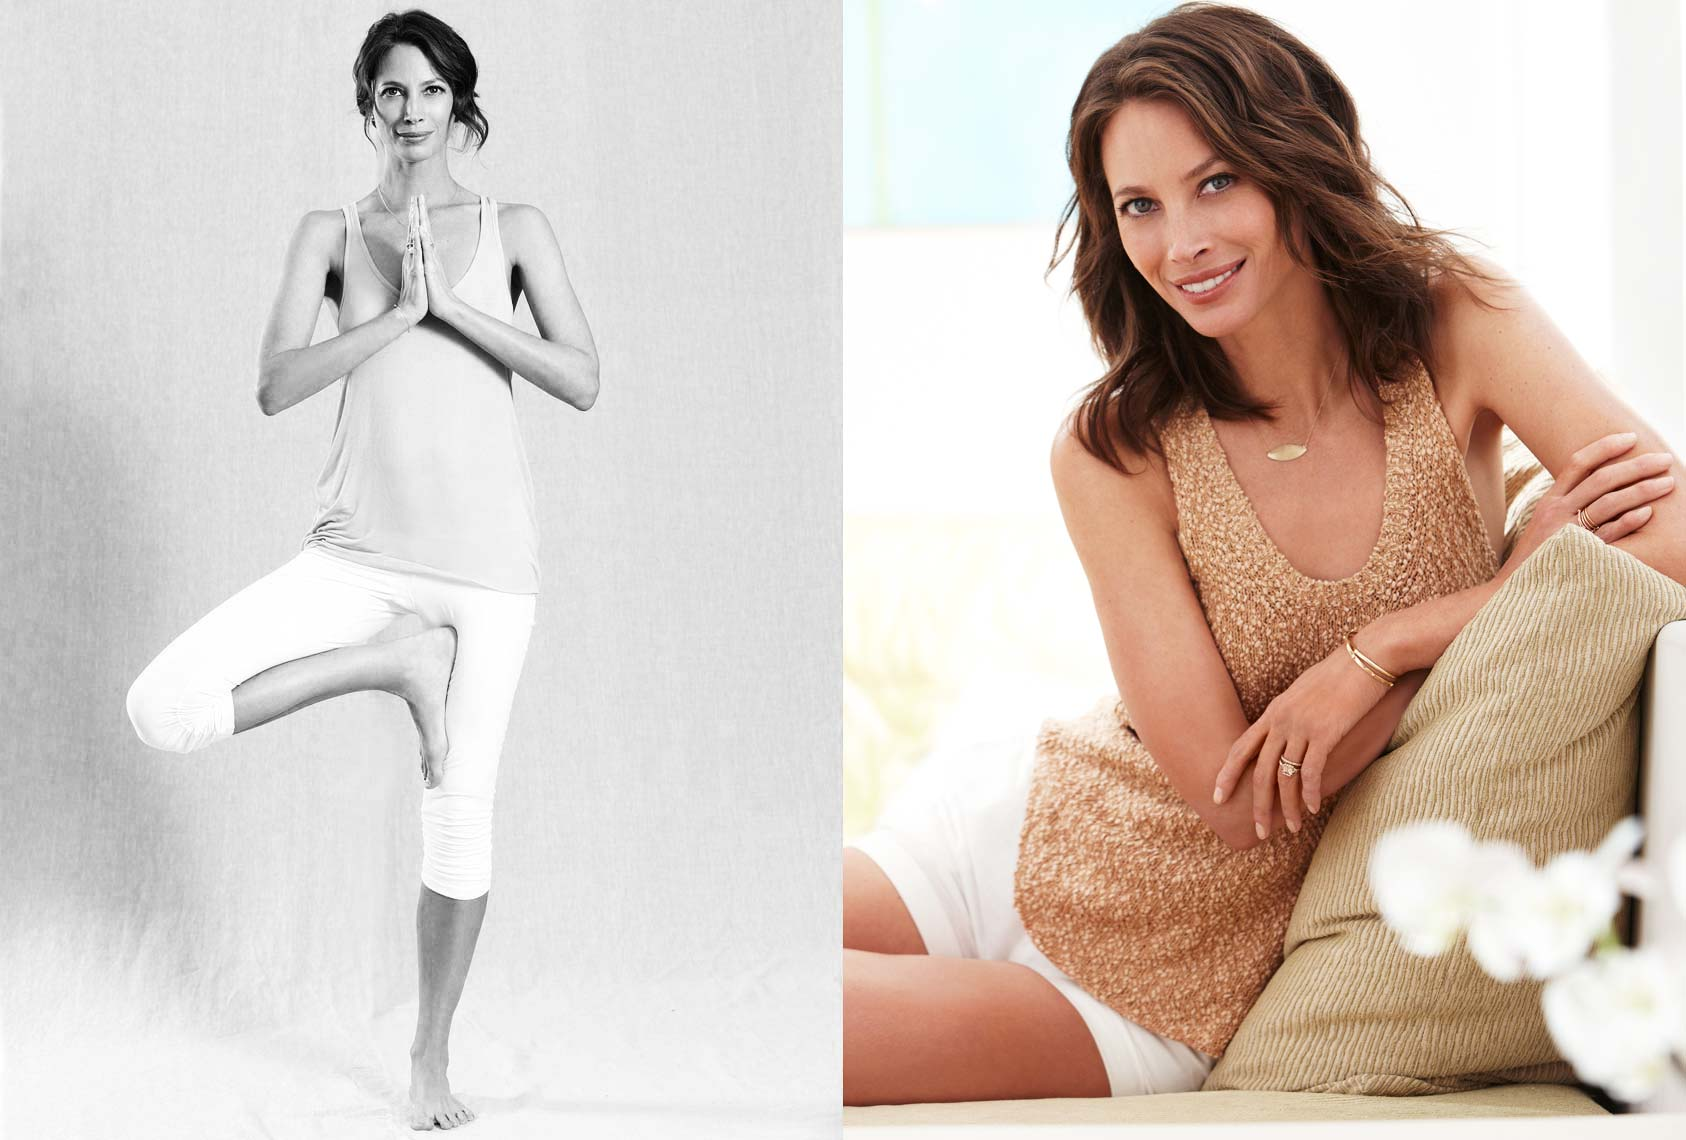 Christy Turlington for Natural Health